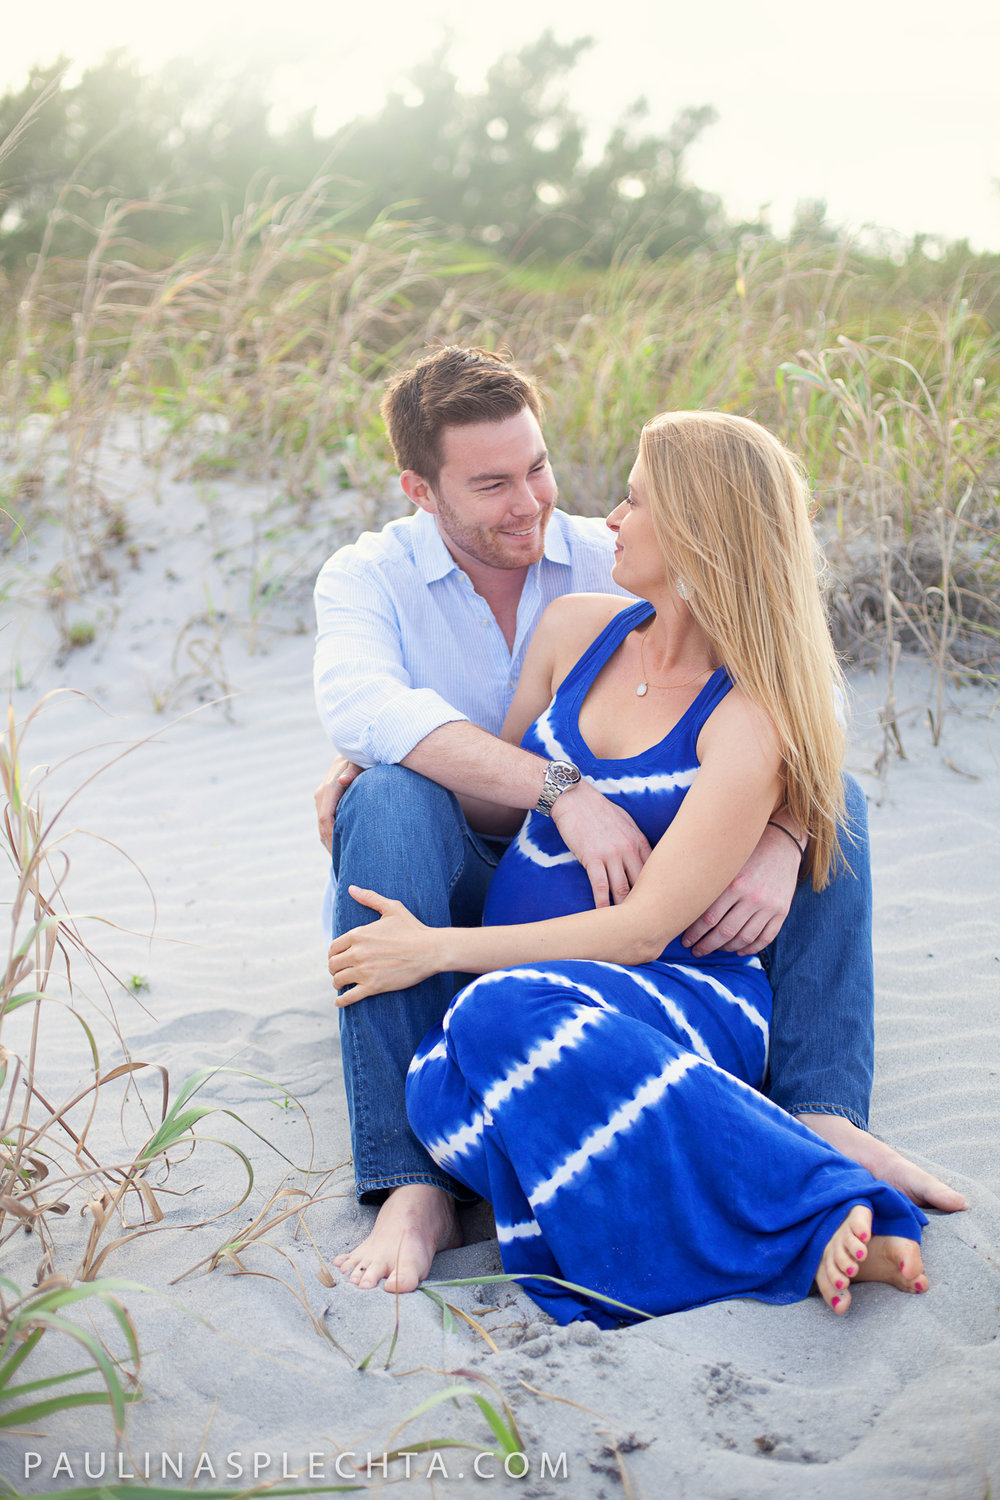 boca-raton-maternity-photographer-pregnancy-photos-shoot-ft-lauderdale-south-florida-gown-dress-newborn-west-palm-beach-delray-10.jpg